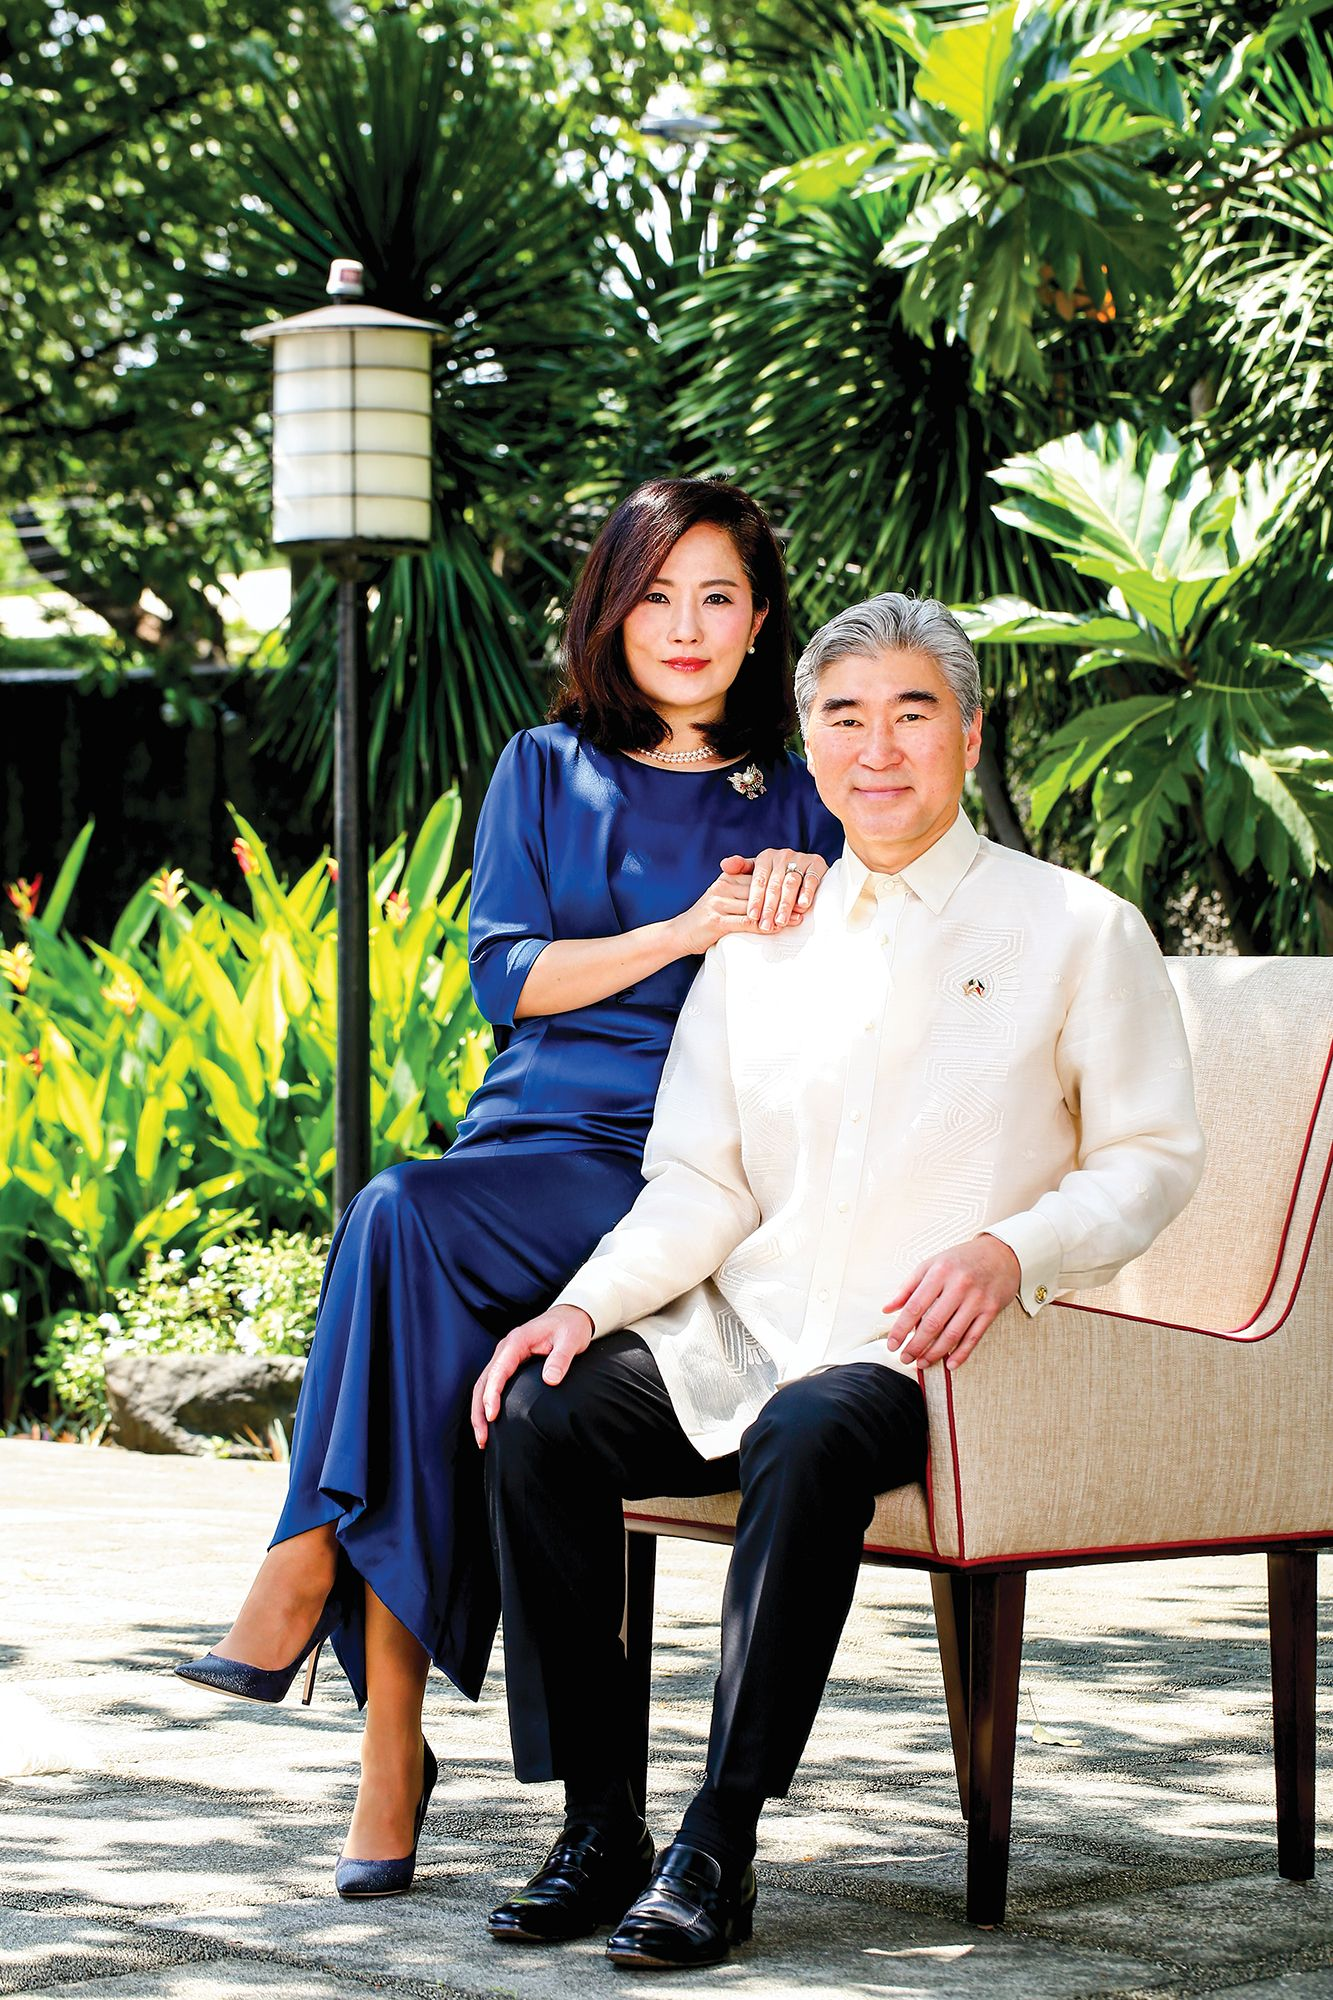 US Ambassador Sung Yong Kim Shares His Fondest Memories From Four Years In The Philippines